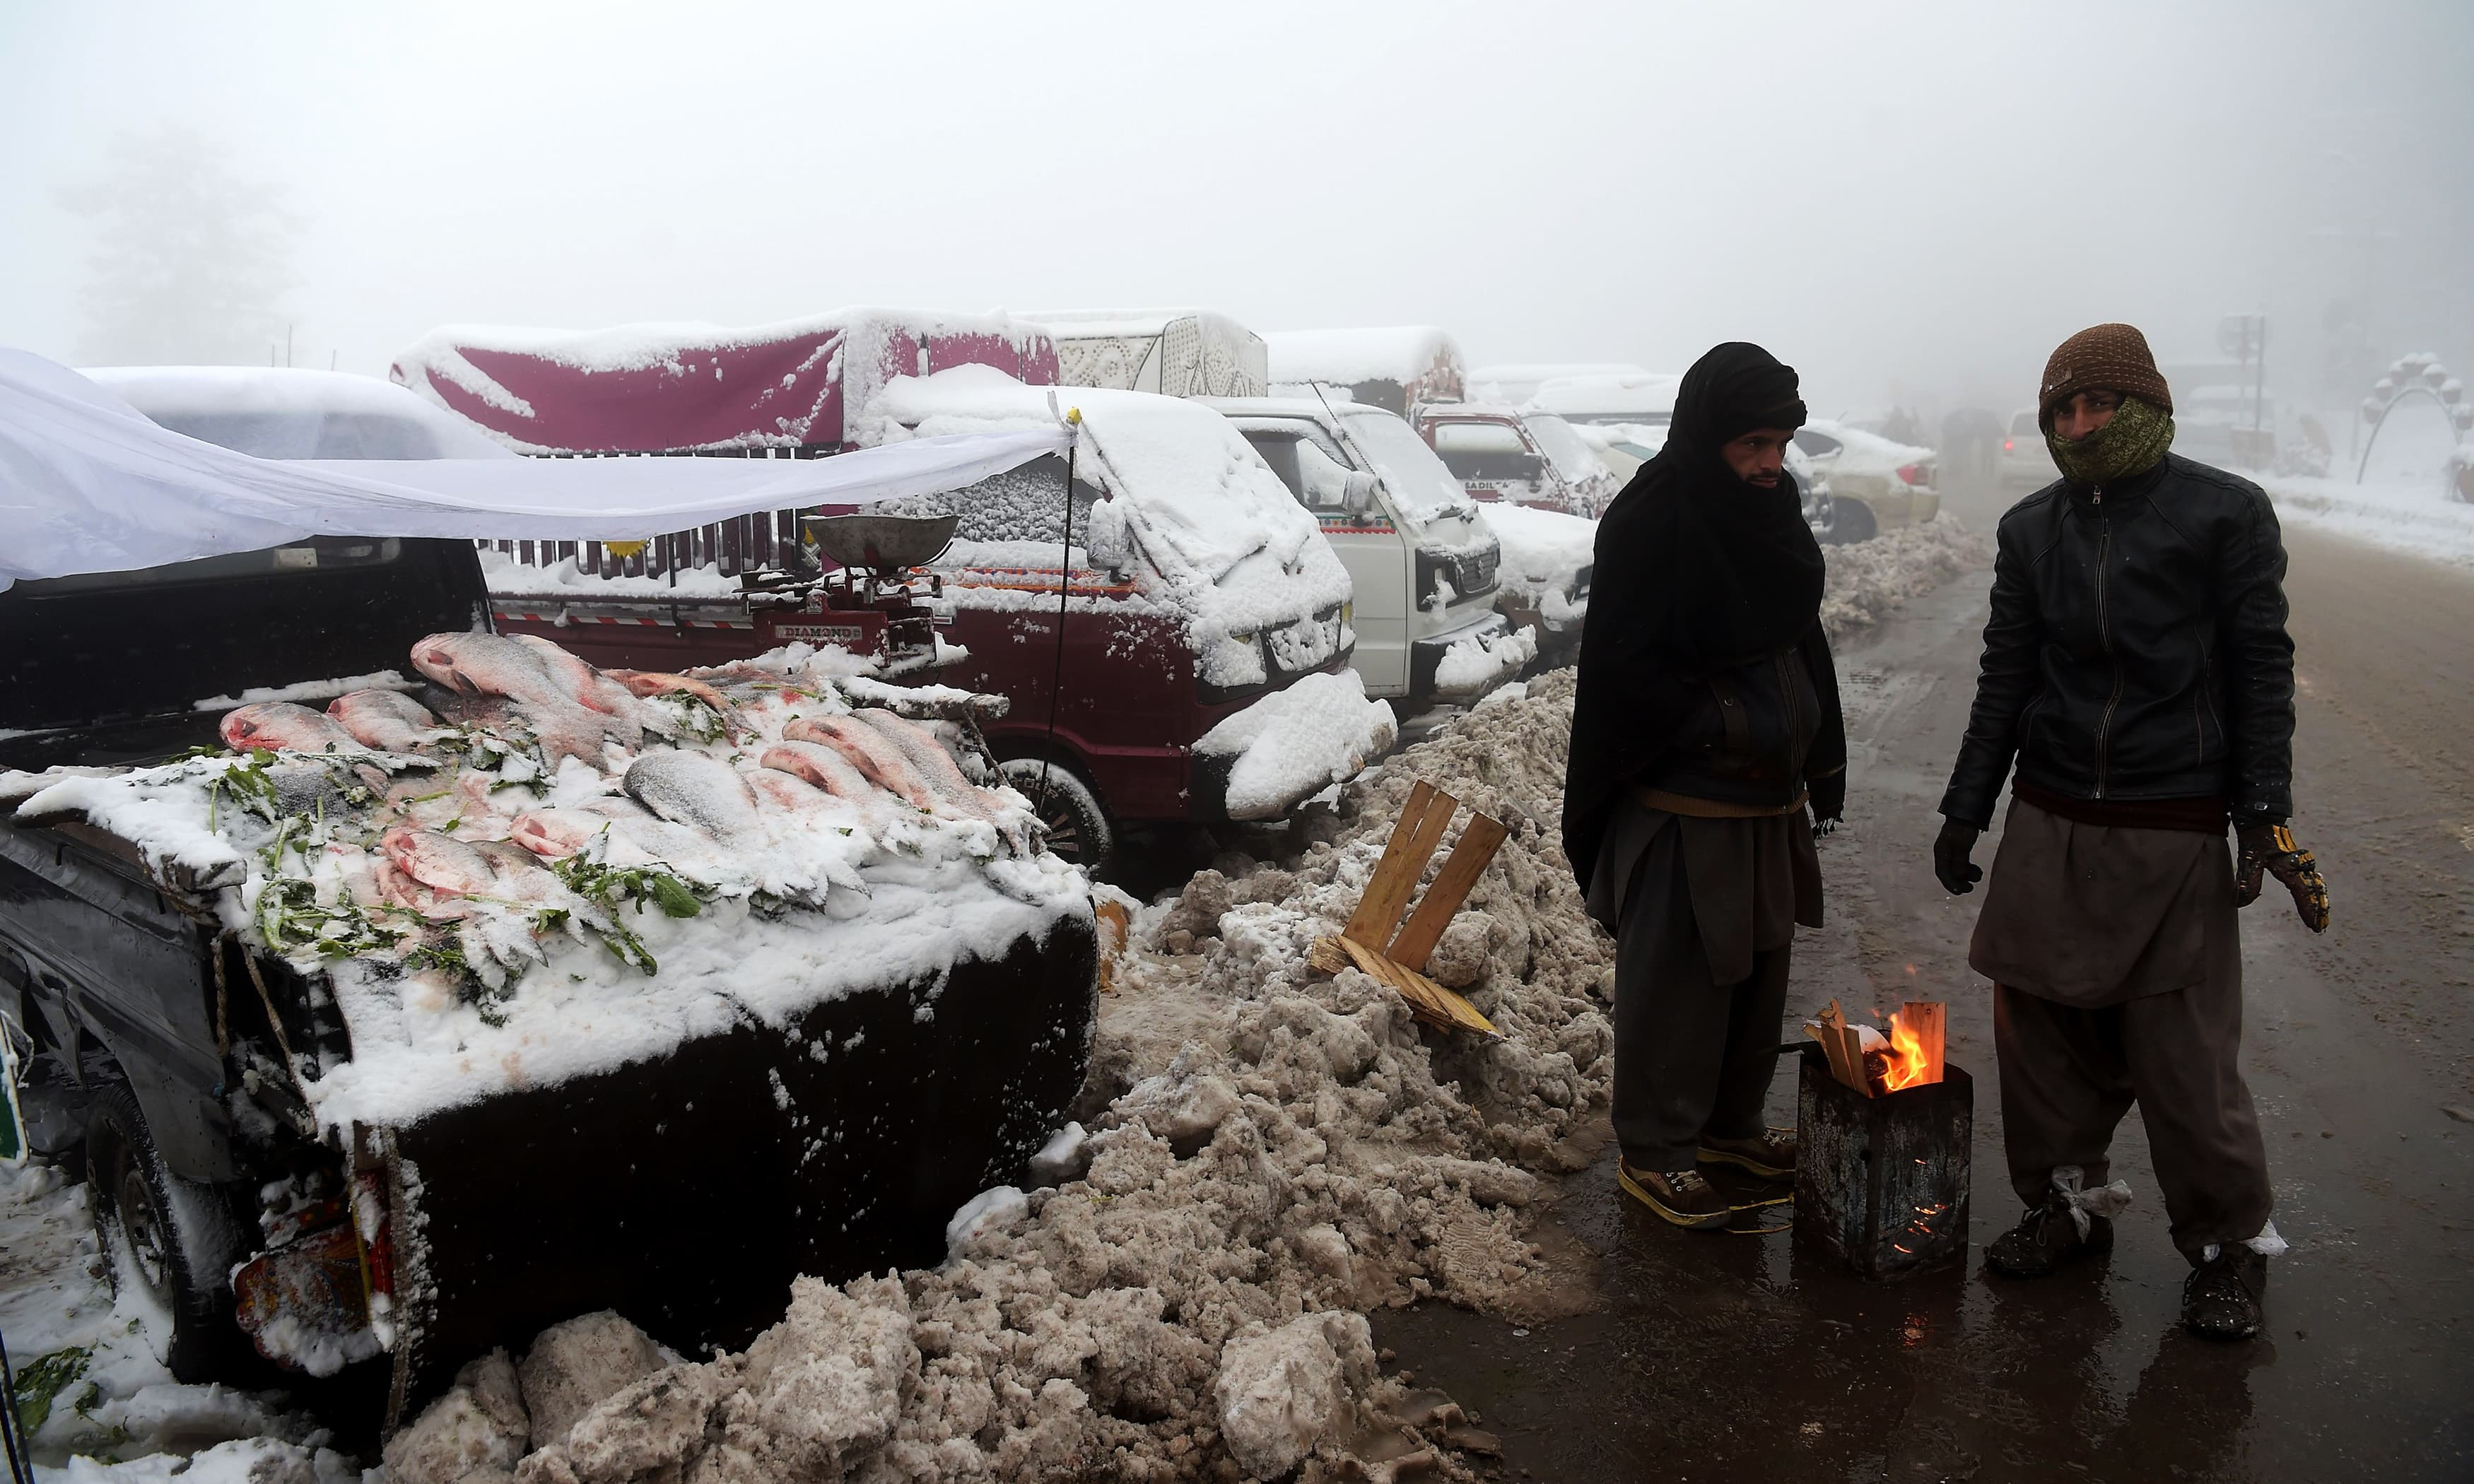 Vendors heat up around a fire next to their fish stall during snowfall in Murree. —AFP